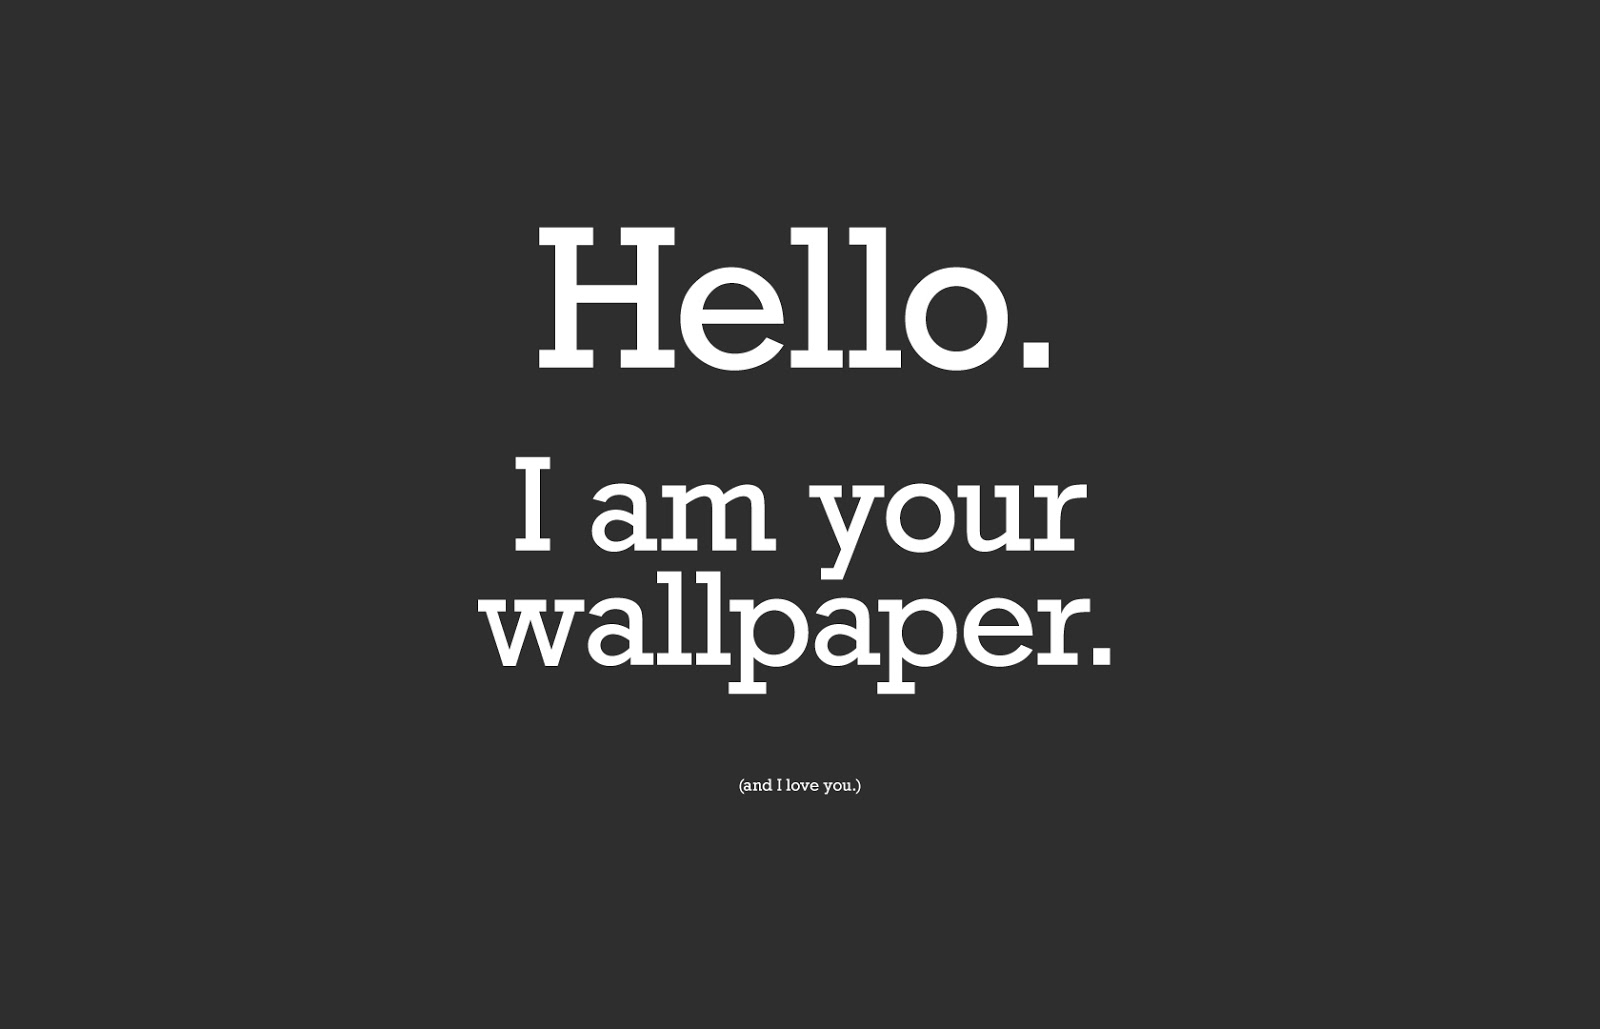 quotes funny wallpaper - photo #10